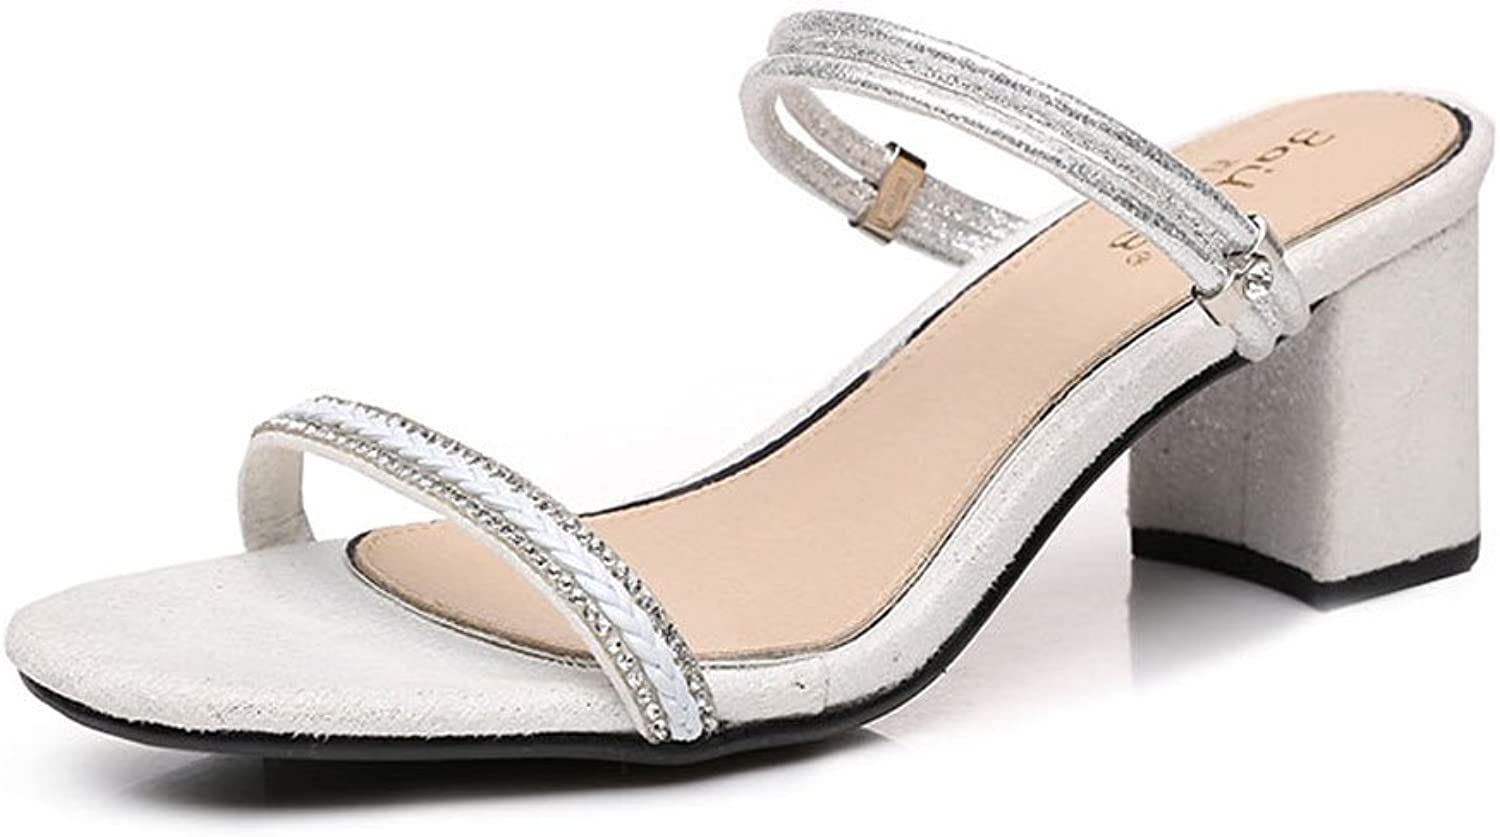 HY Sandals Slippers Two Wear Women's Summer Rough with Fashion with Rhinestone Word Lady High Heels (color   White, Size   35)